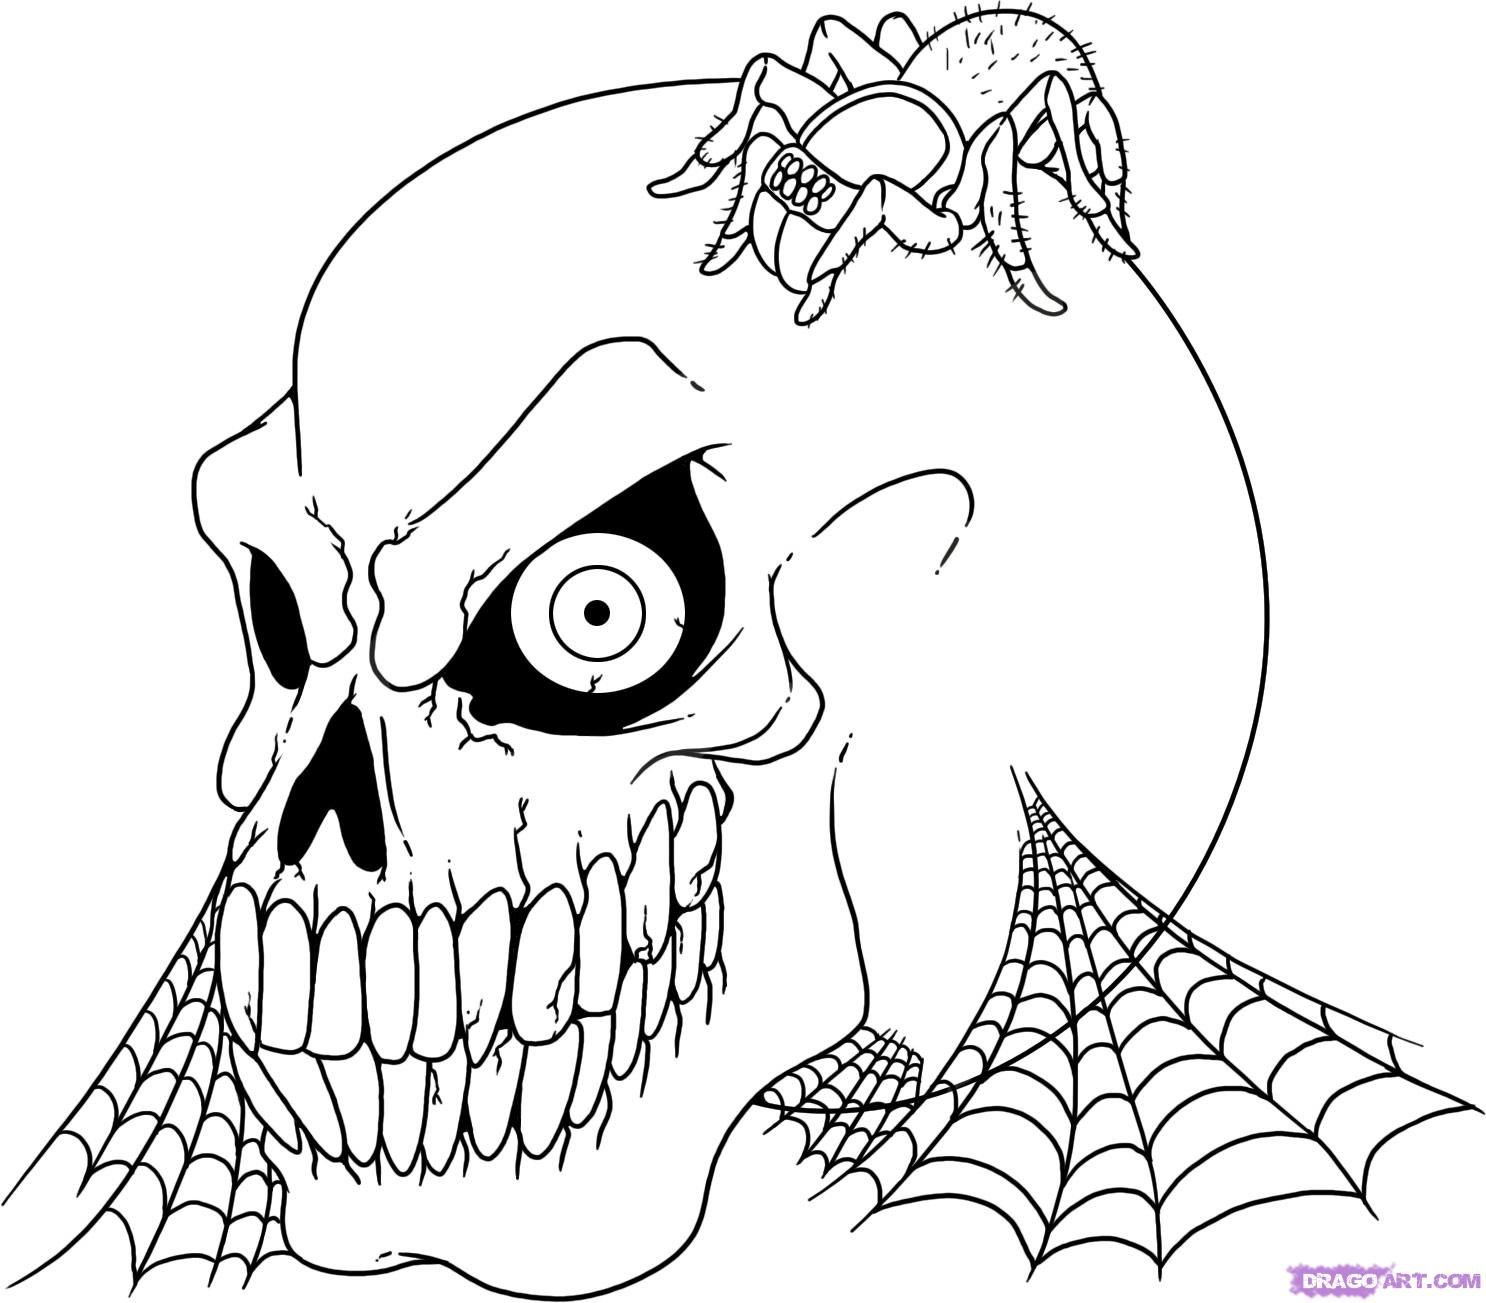 1486x1303 Adult Vampire Coloring Pages Halloween Coloring Pages Halloween